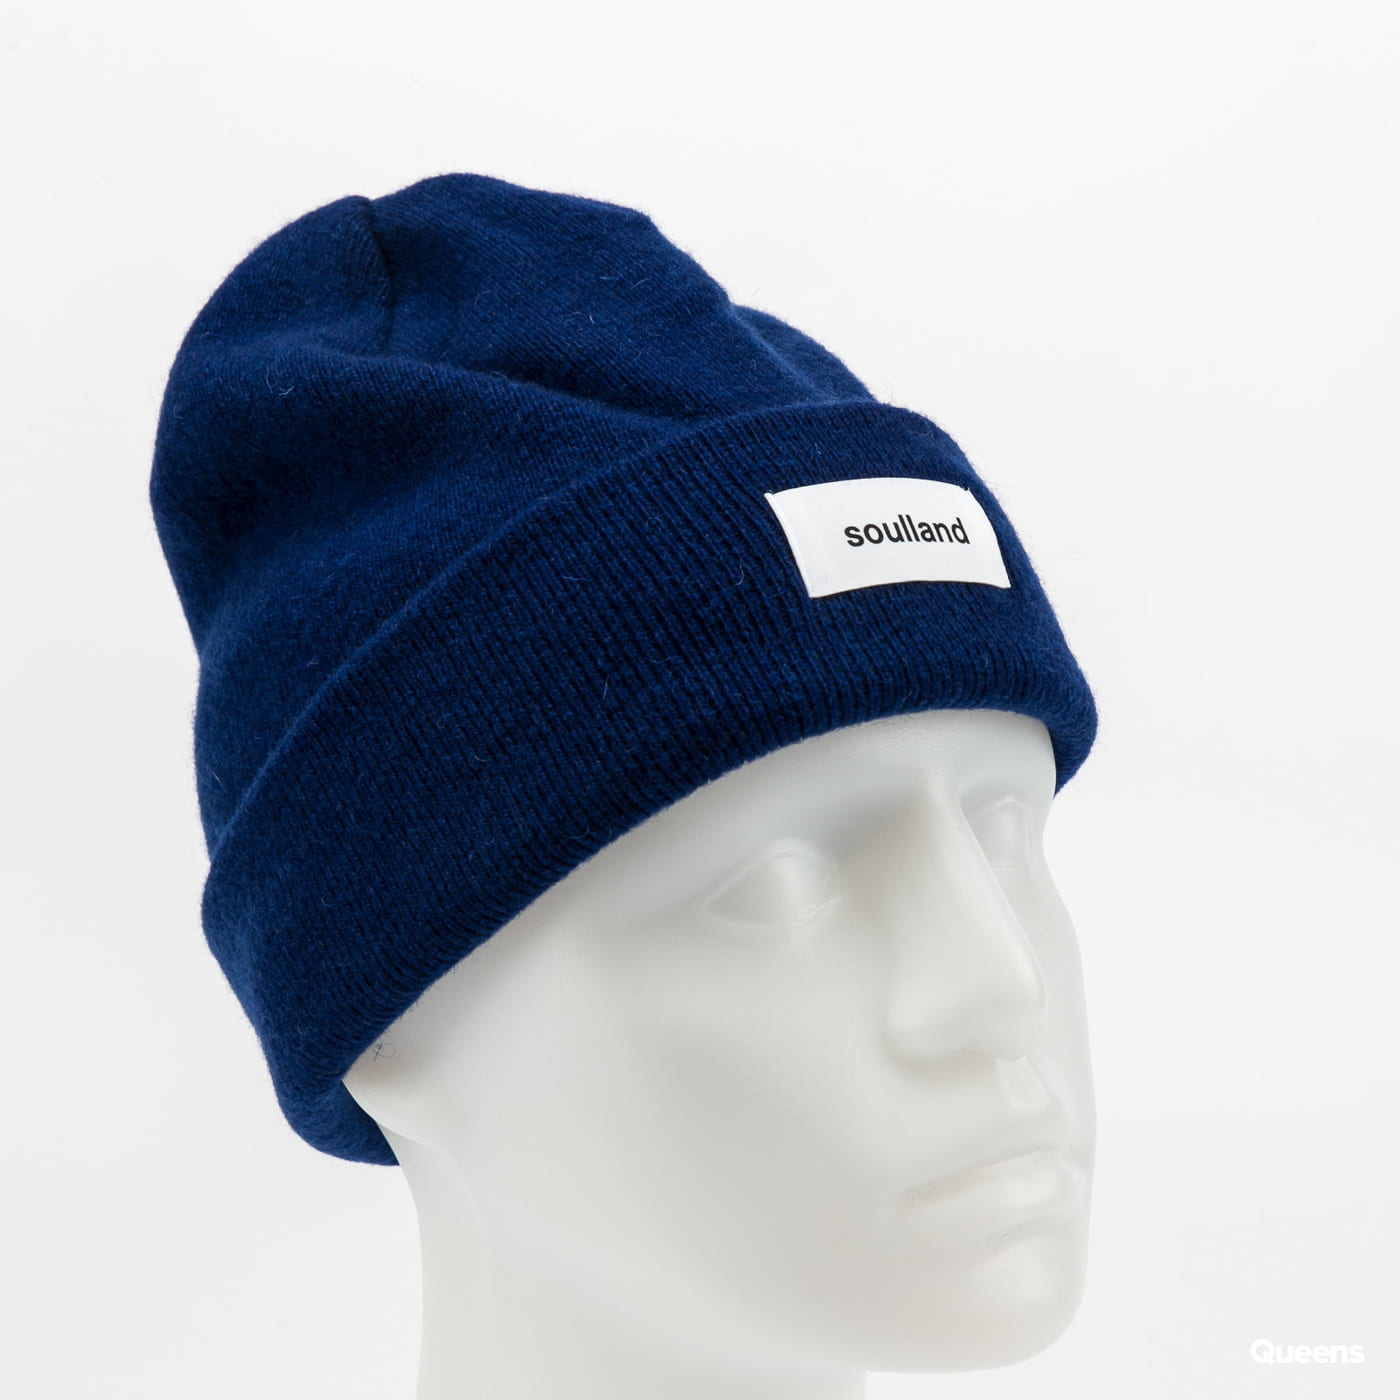 Soulland Beanie blue / turquoise